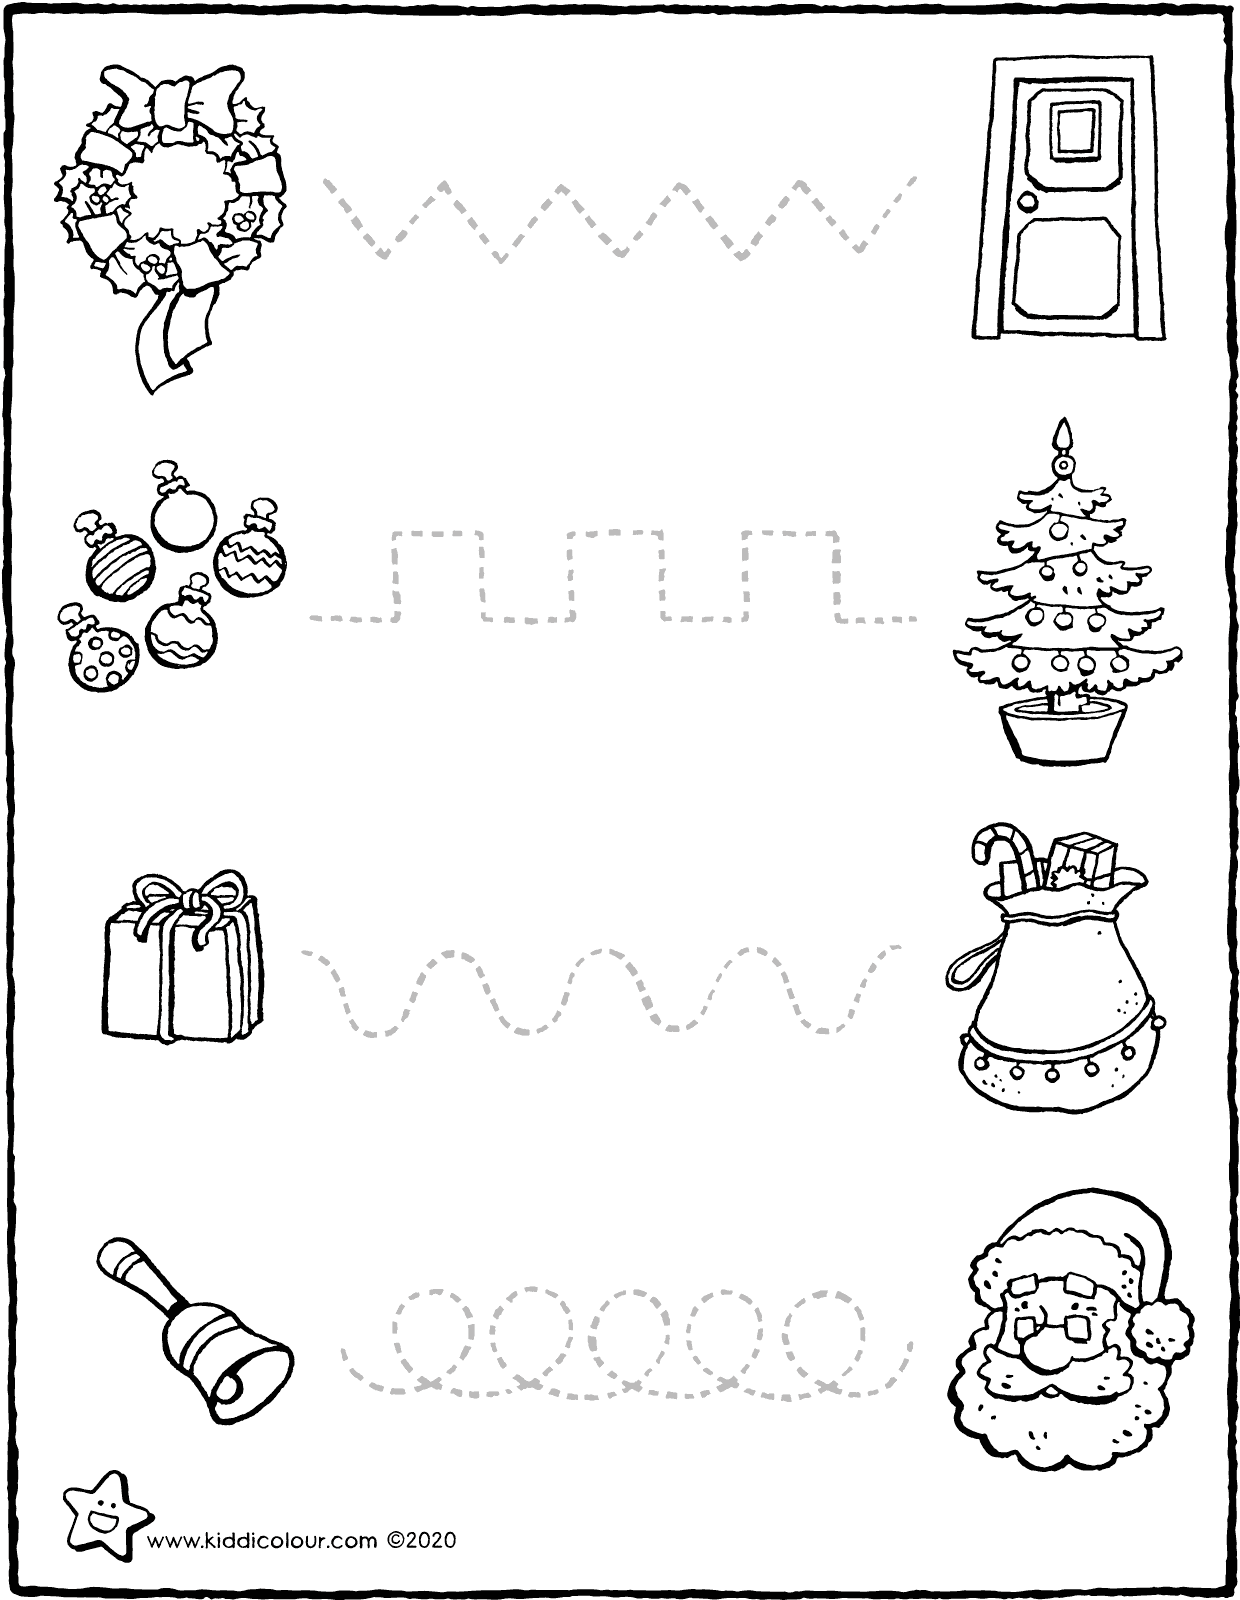 follow the dotted lines and celebrate Christmas colouring page drawing picture 01V